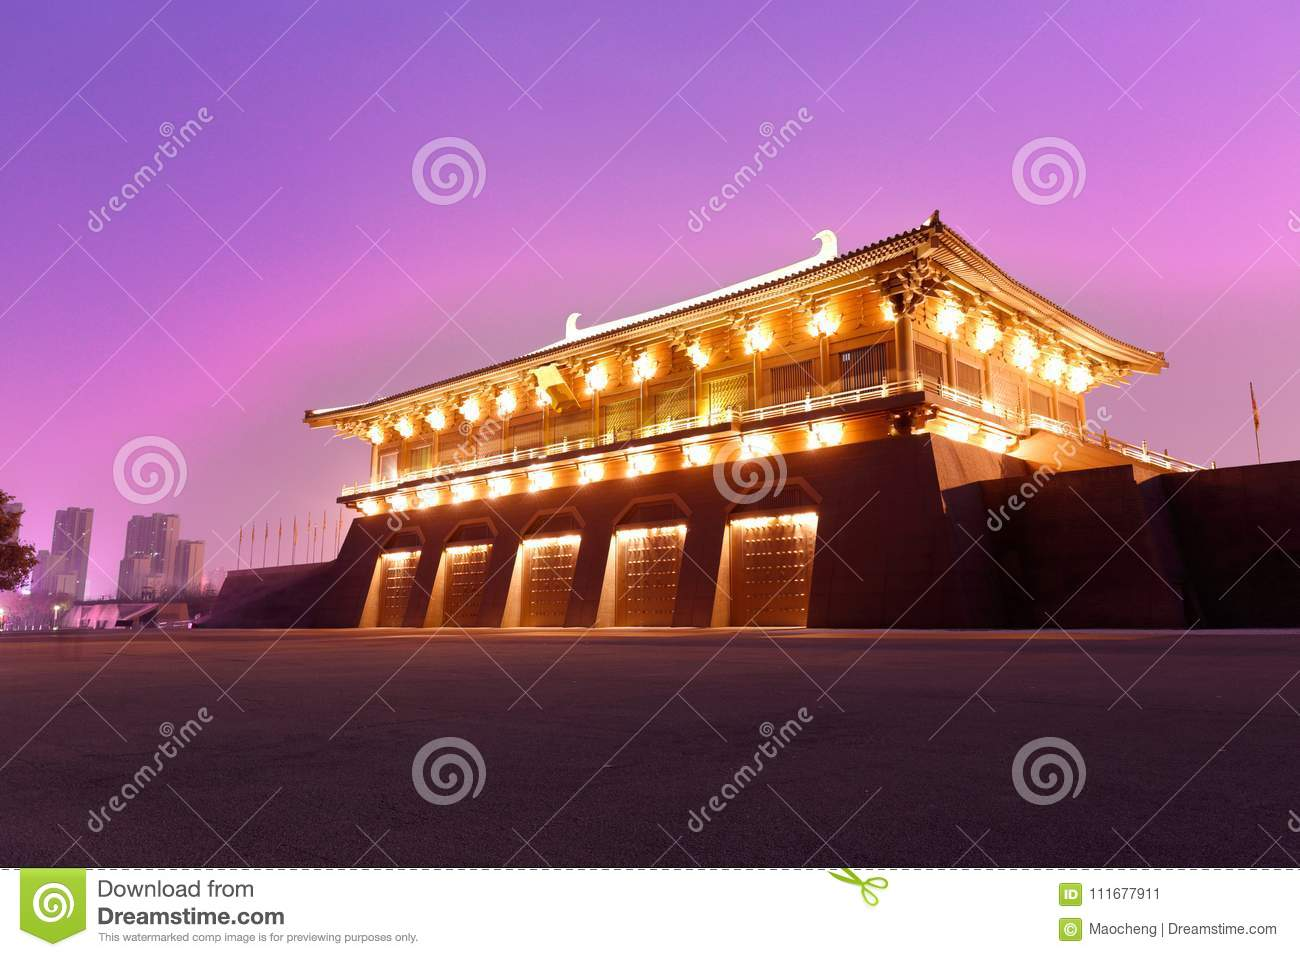 Chinese gate tower of tang dynasty under ultra violet night sky, srgb image